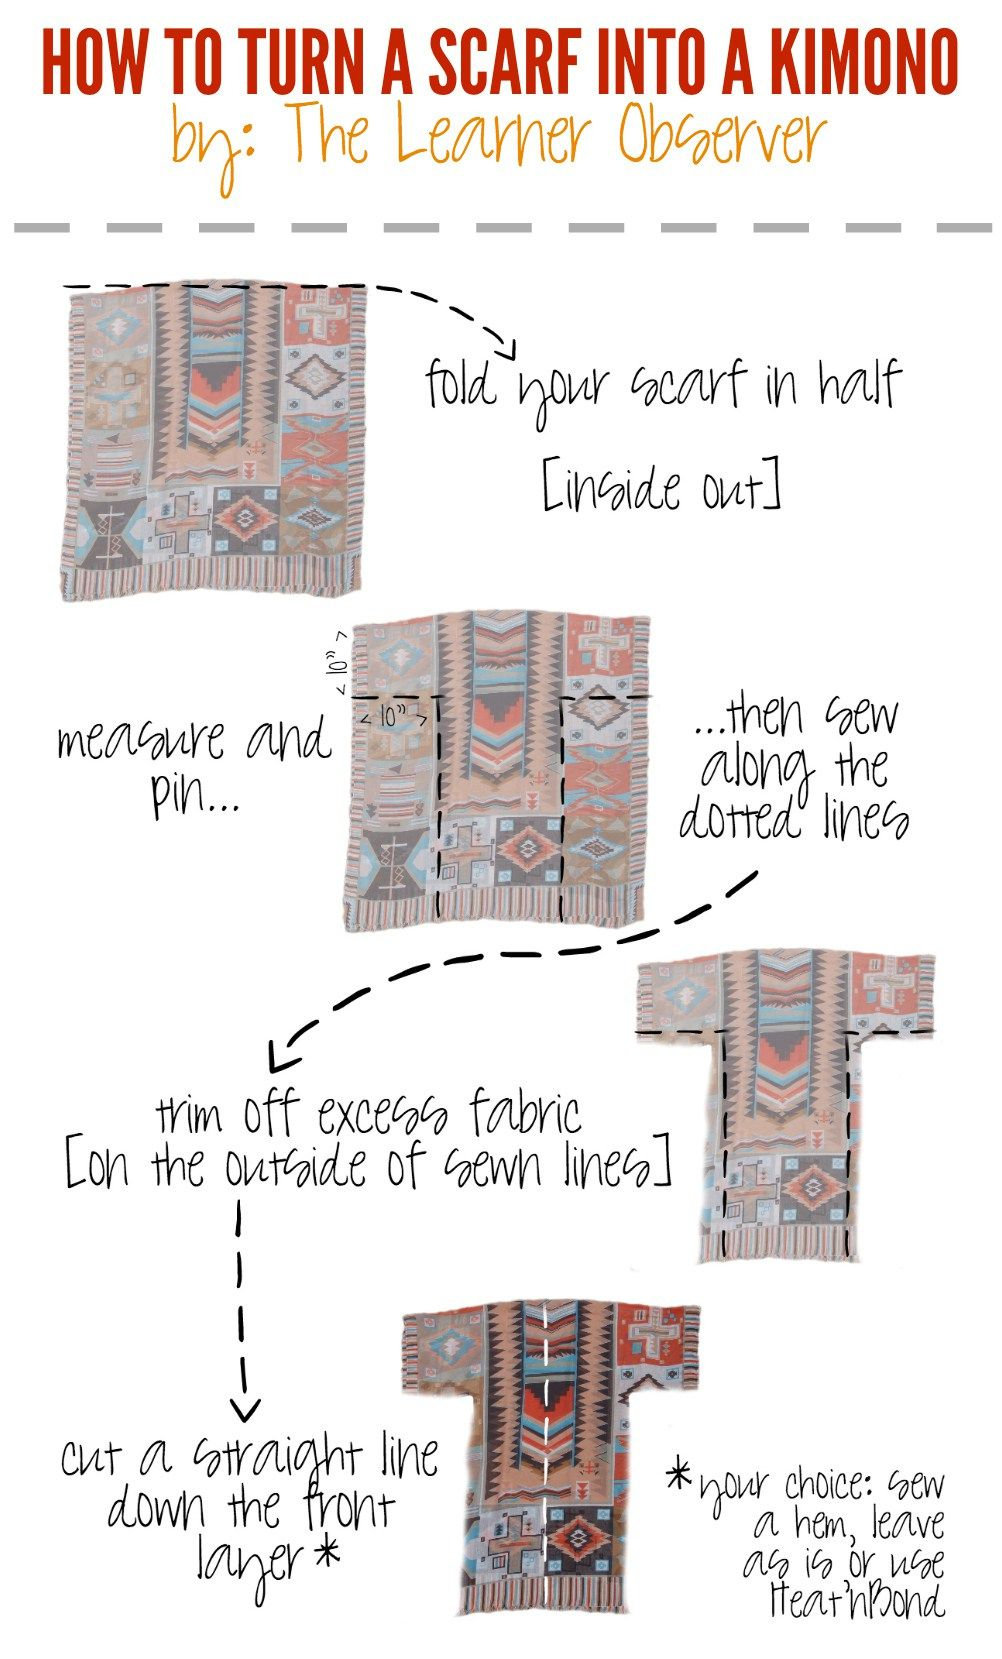 Make Your Own Kimono From A Scarf Scarf Week The Learner Observer Sewing Projects For Beginners Sewing Tutorials Beginner Sewing Projects Easy